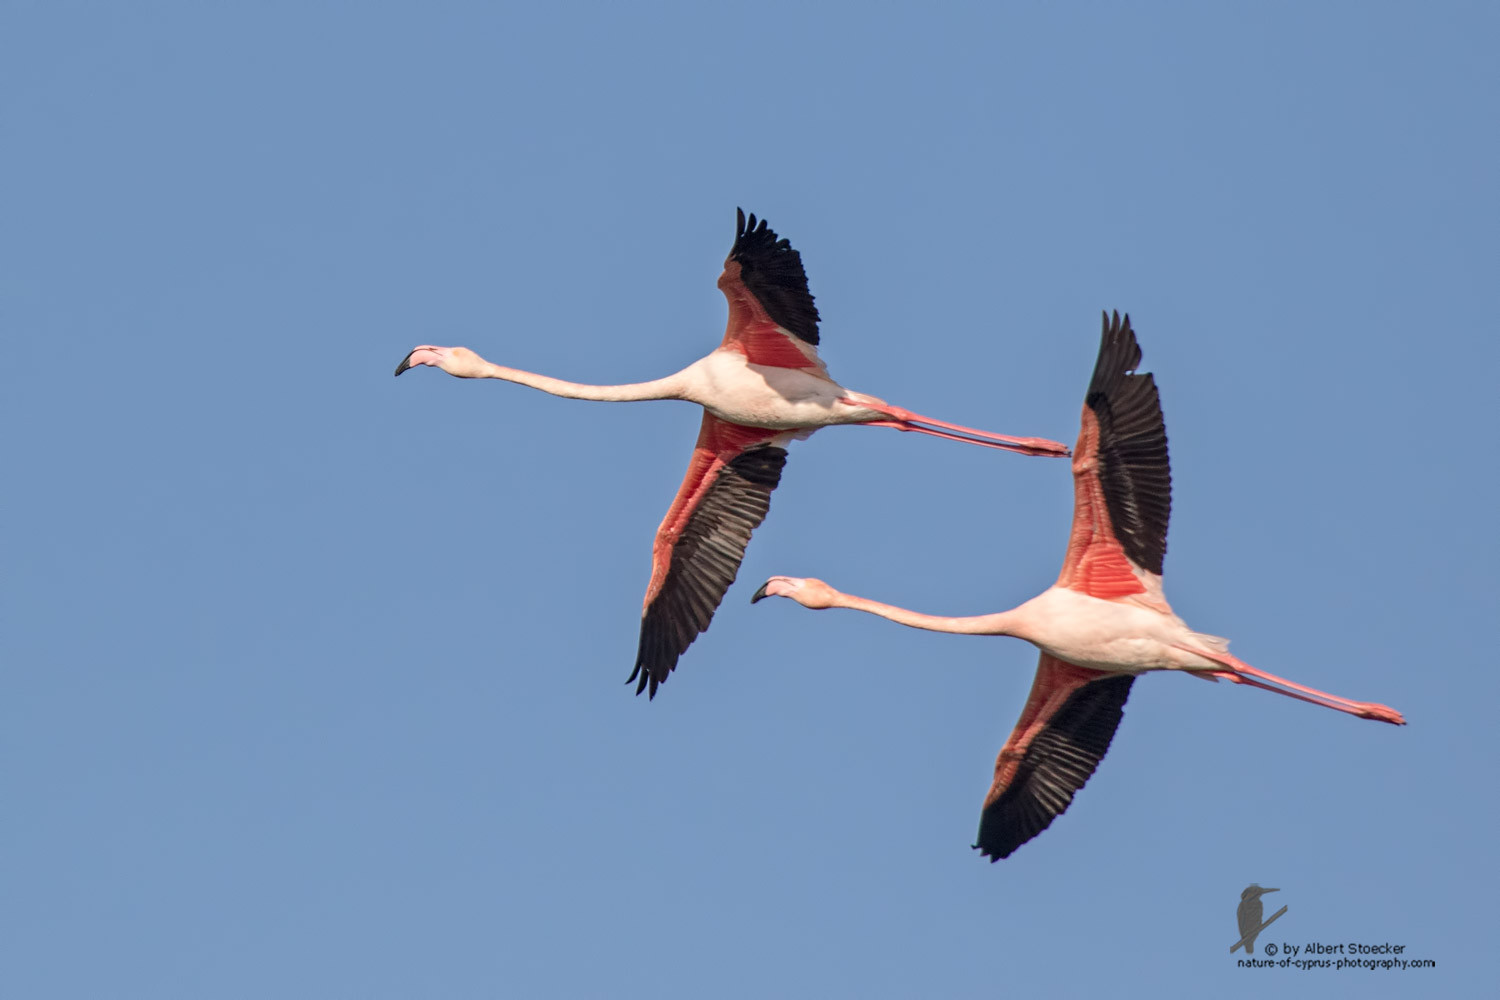 Phoenicopterus ruber - Greater Flamingo - Rosaflamingo, Cyprus, Larnaca Spiros Pool, January 2016